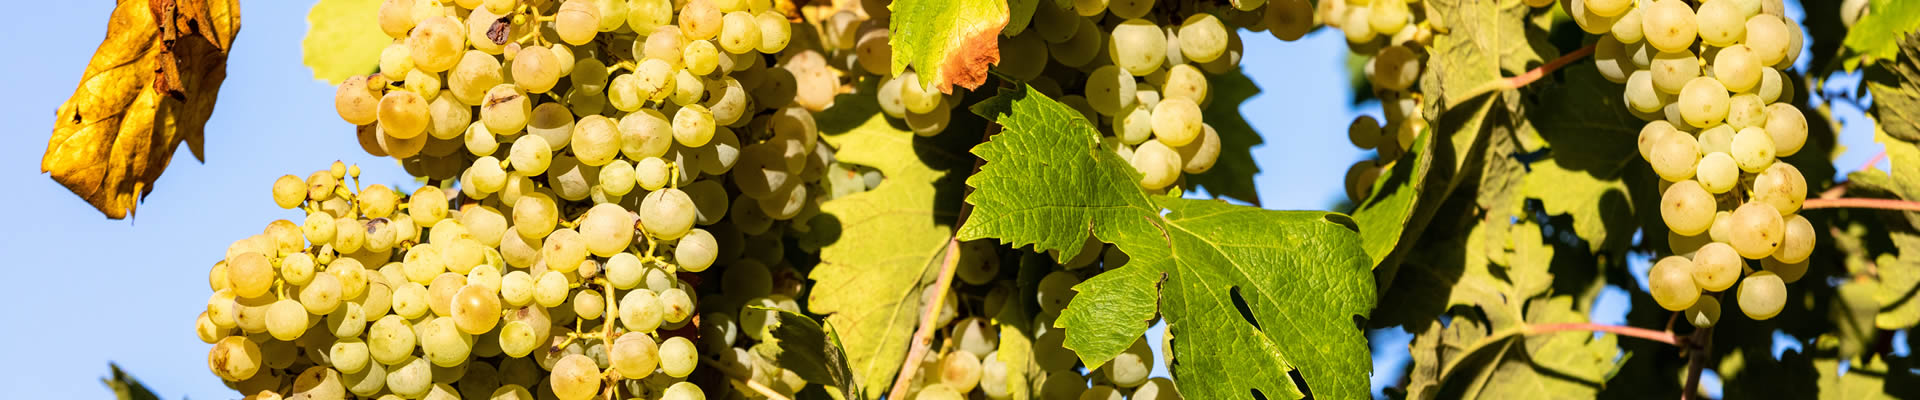 Glera grapes grown for Prosecco wine